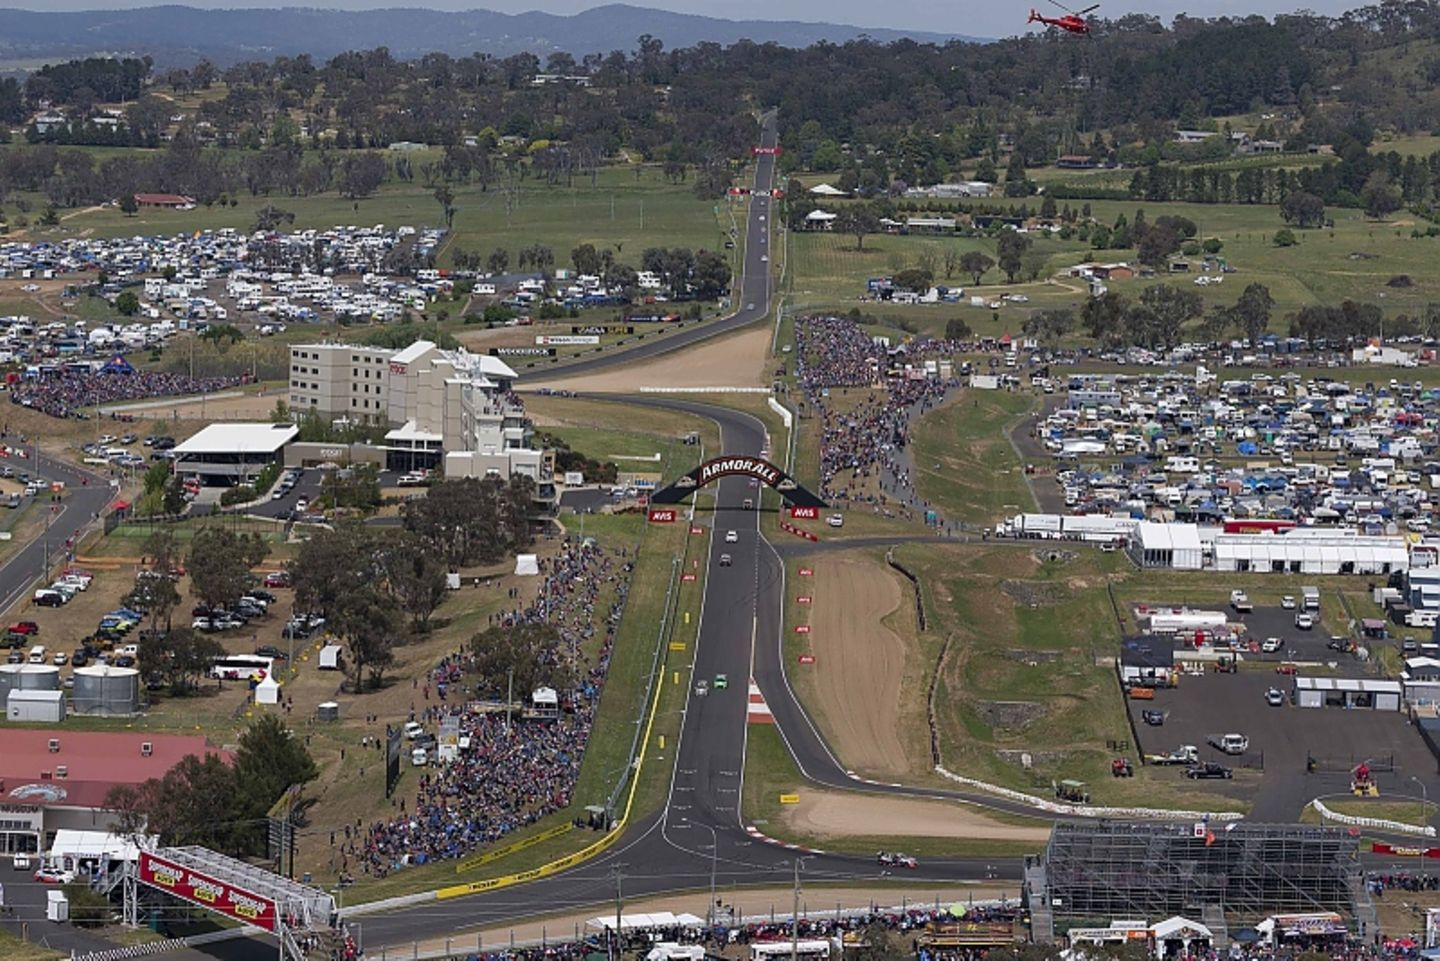 Mount Panorama Circuit Bathurst / New South Wales